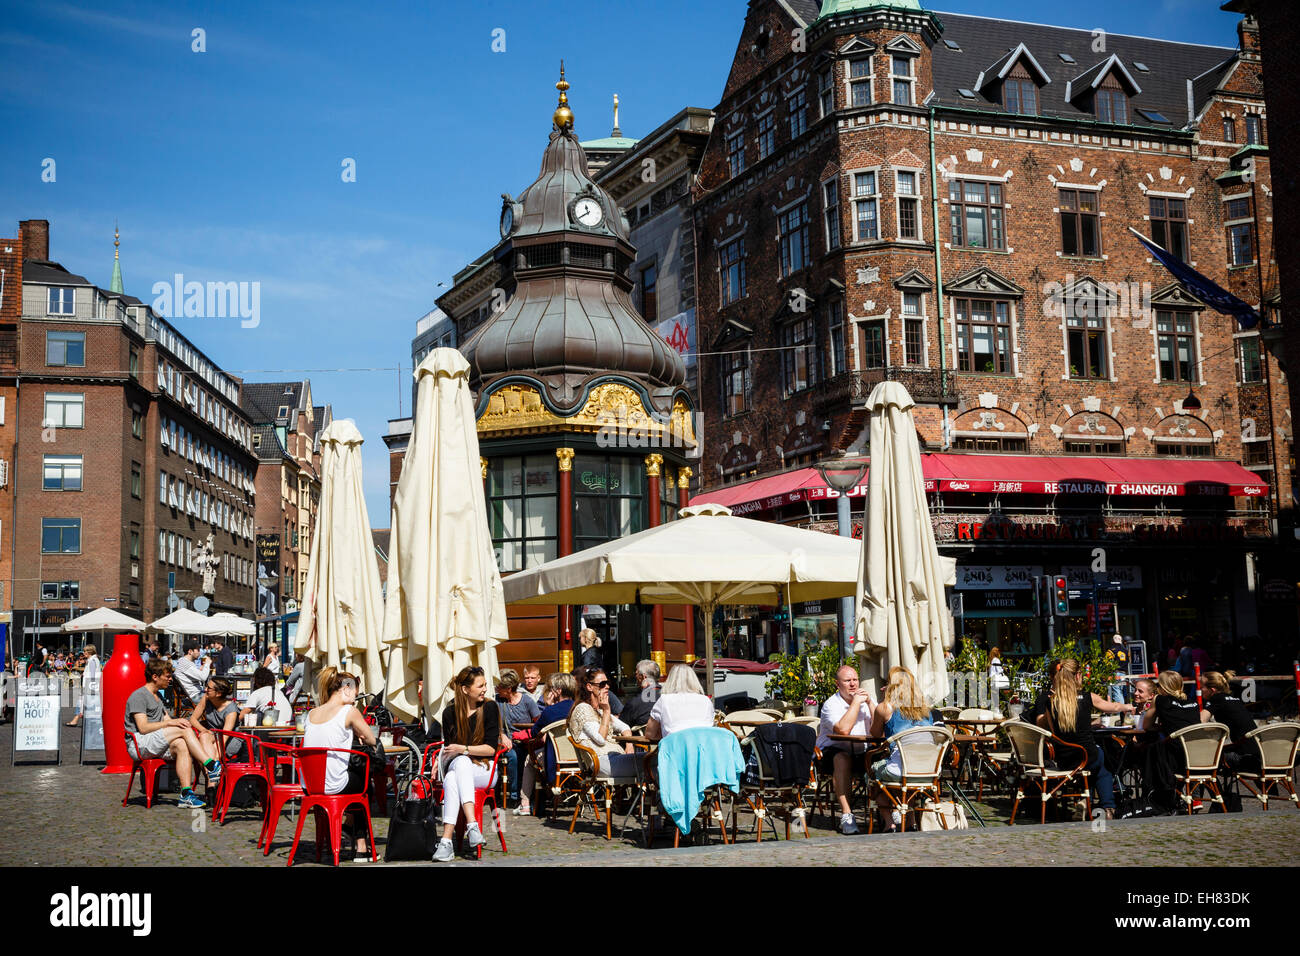 People sitting at a cafe in Nytorv, Copenhagen, Denmark, Scandinavia, Europe Stock Photo